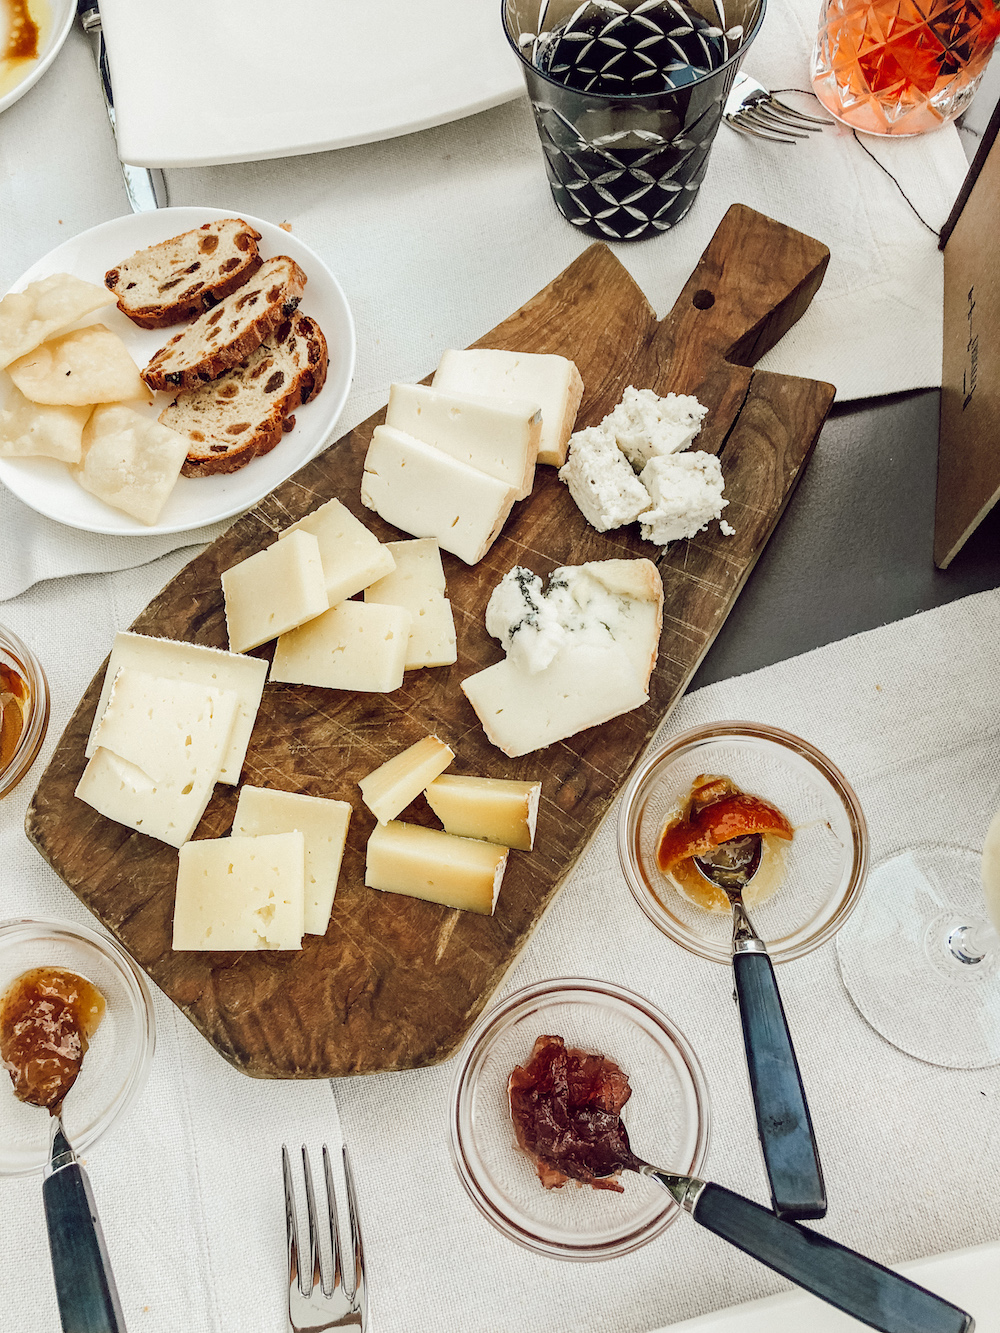 To finish off this blog post, - I'll leave you with this... the best cheese board I've ever had in my life. 7 different types of cheese, 3 marmalades, honey, and two types of bread. I'm not even kidding, I 100% shed a couple tears (I'm not even embarrassed).